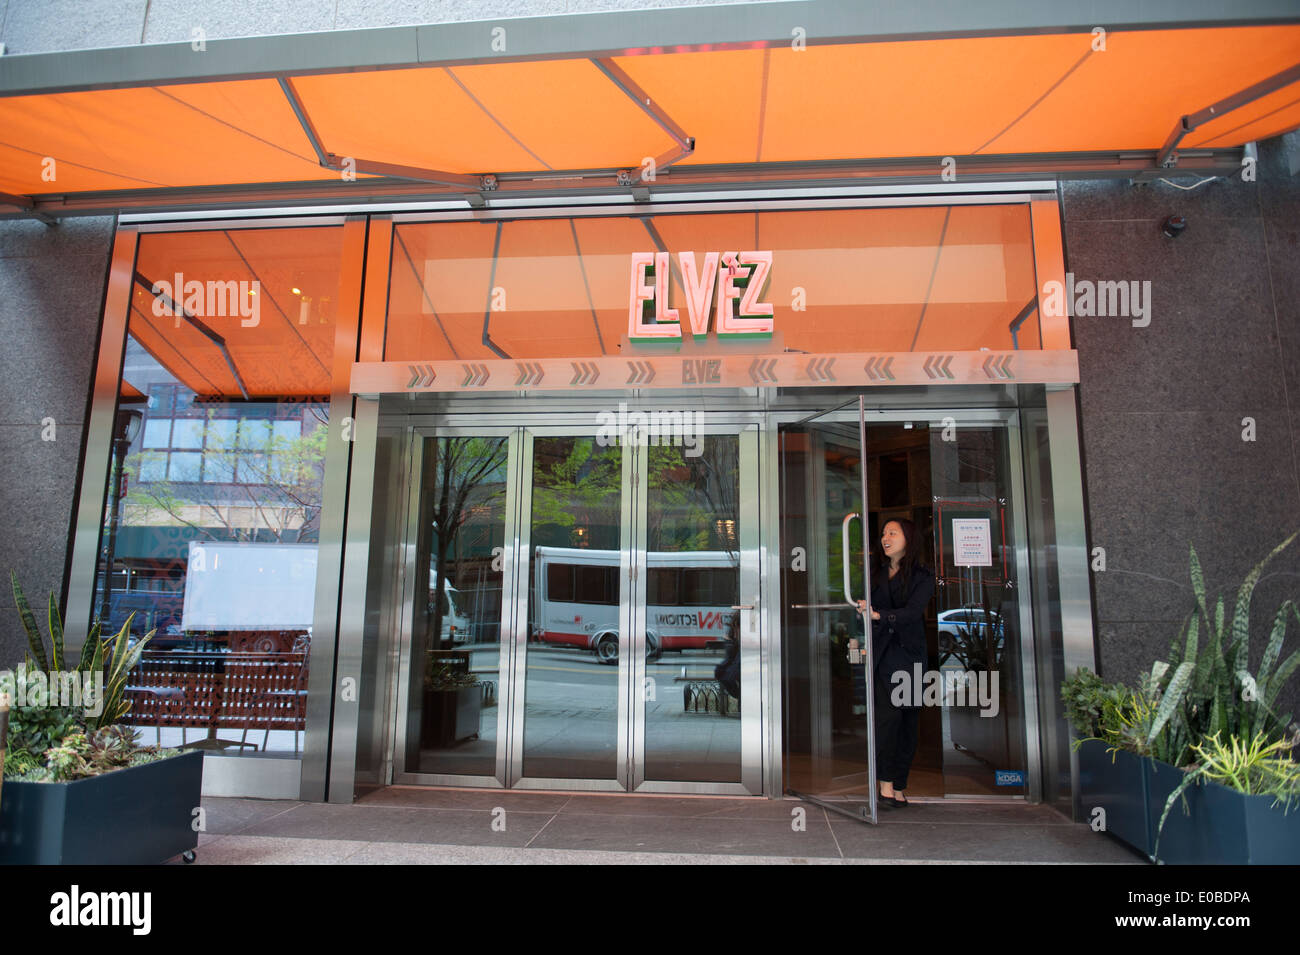 El vez a mexican american restaurant in battery park city stock photo royalty free image for Mexican restaurant garden city